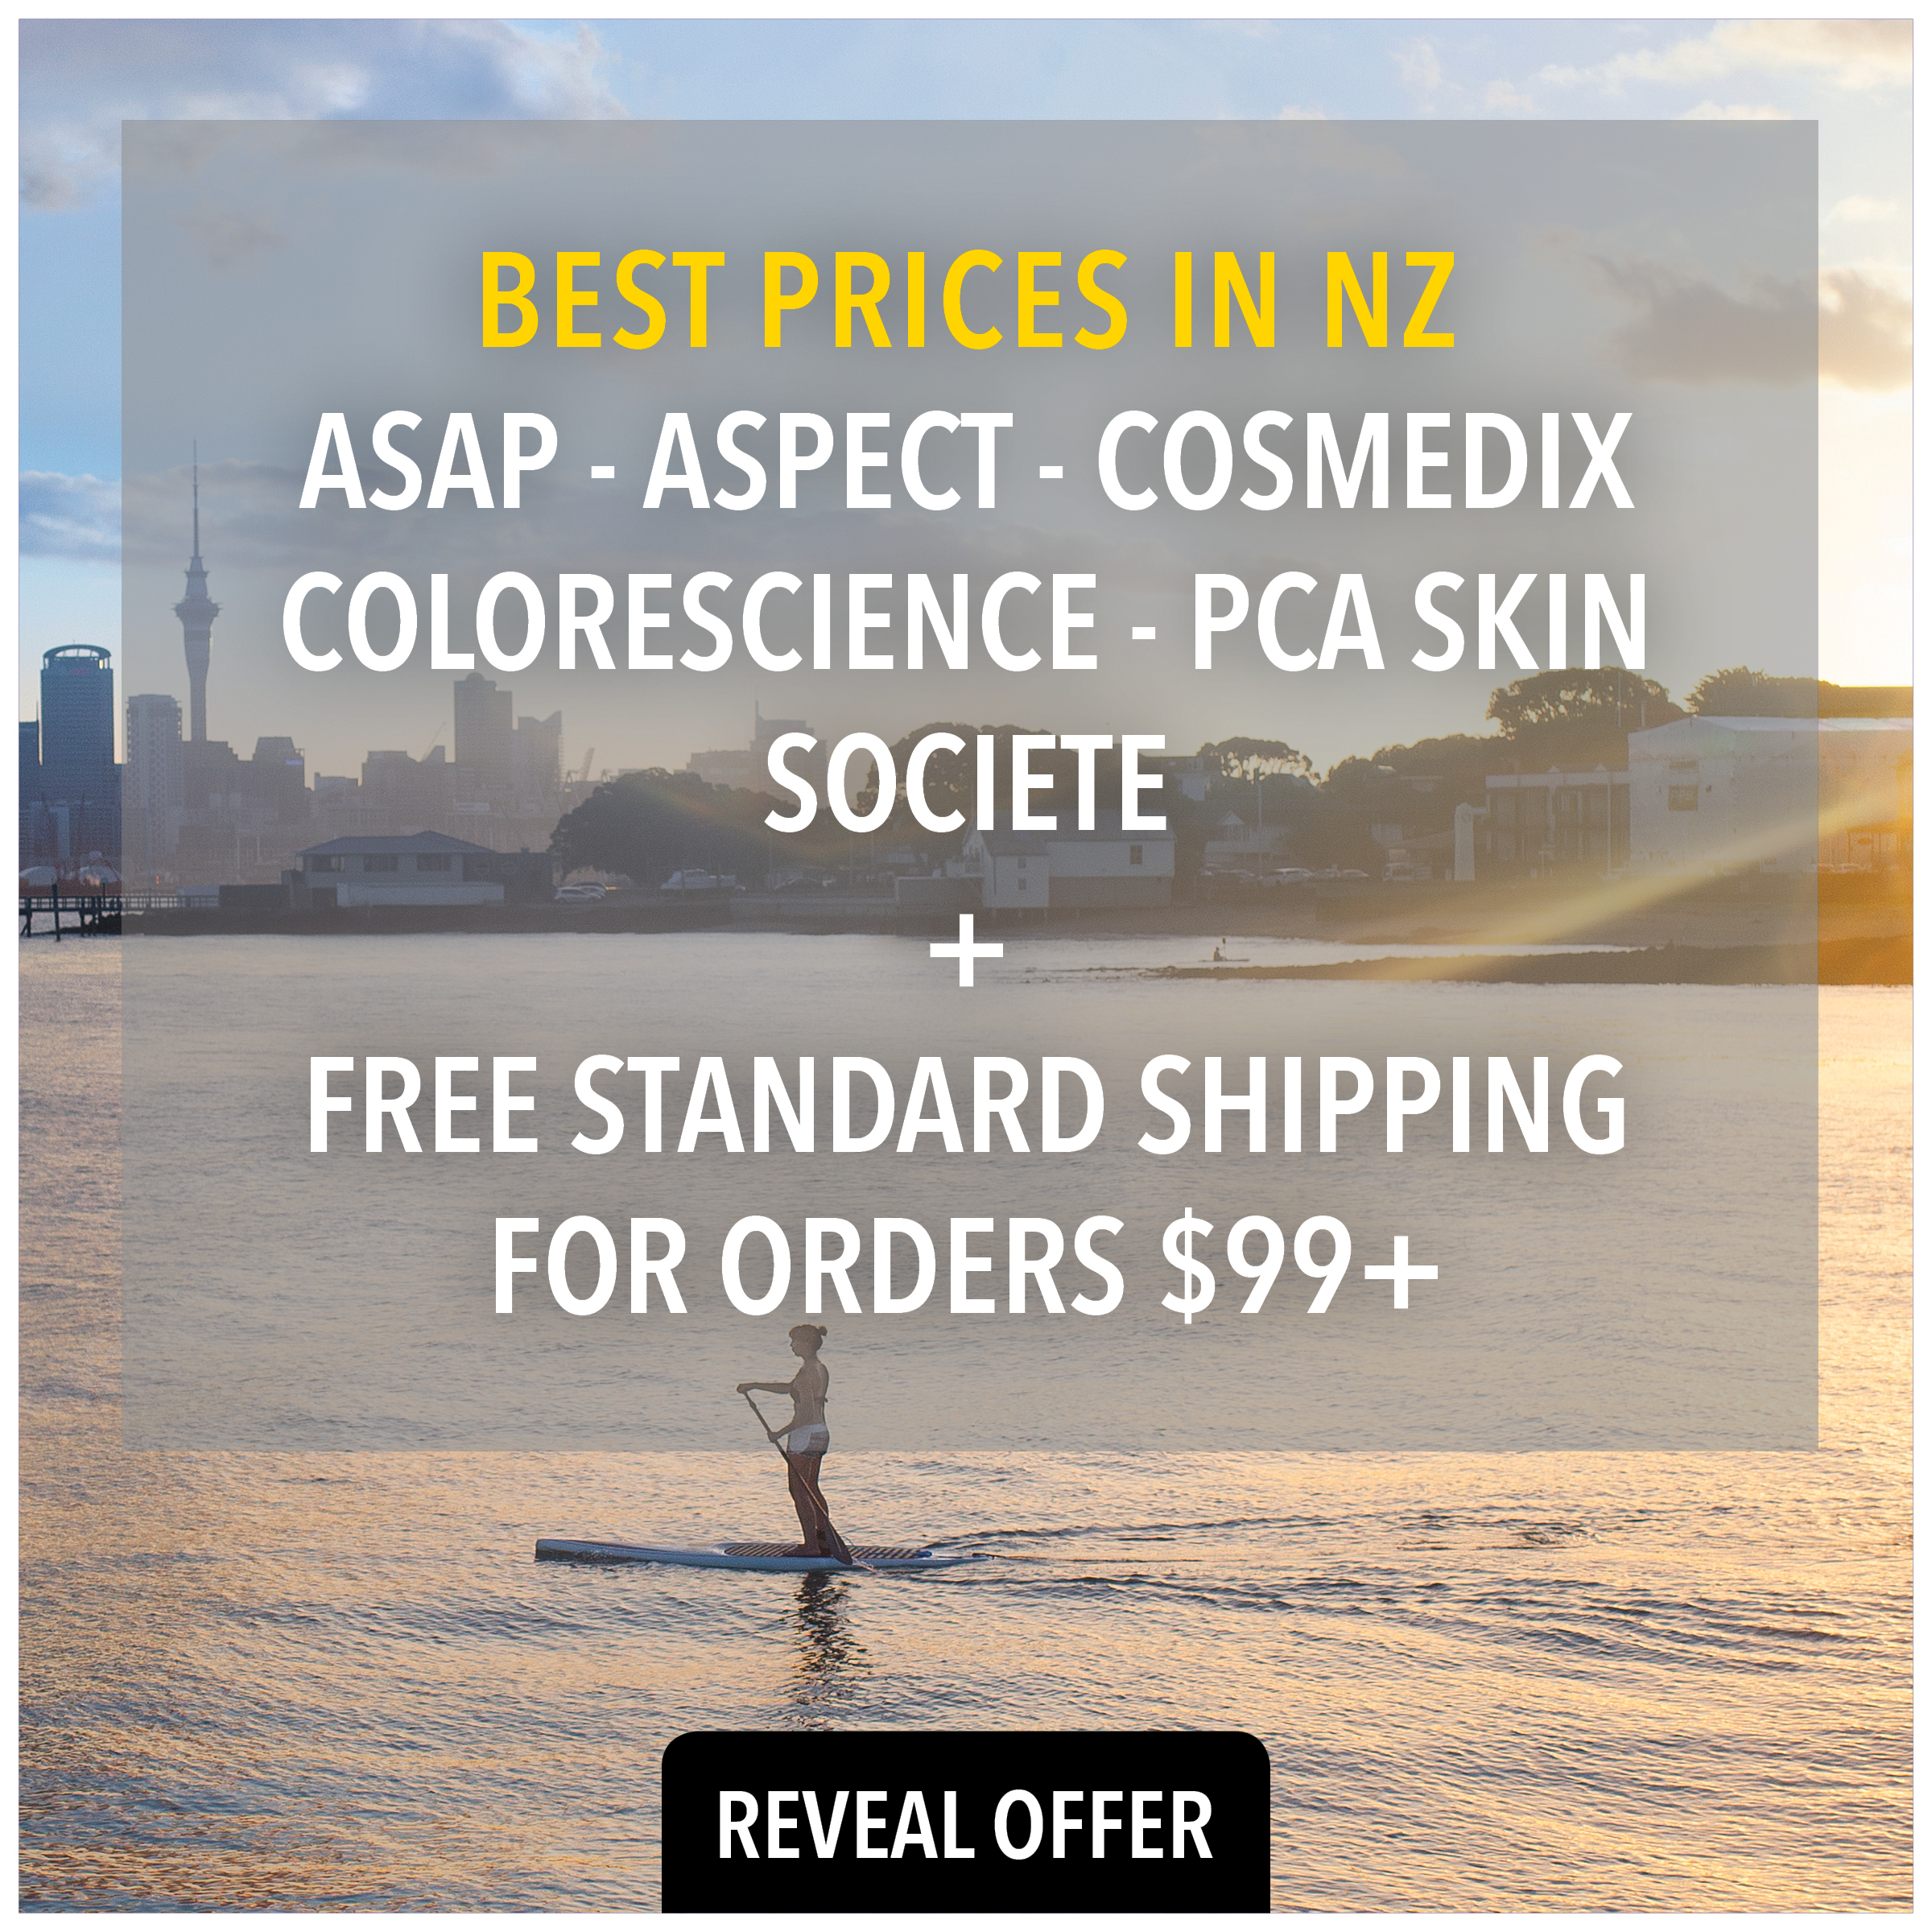 best deals online for asap, aspect and cosmedix skincare only at Prodermal NZ